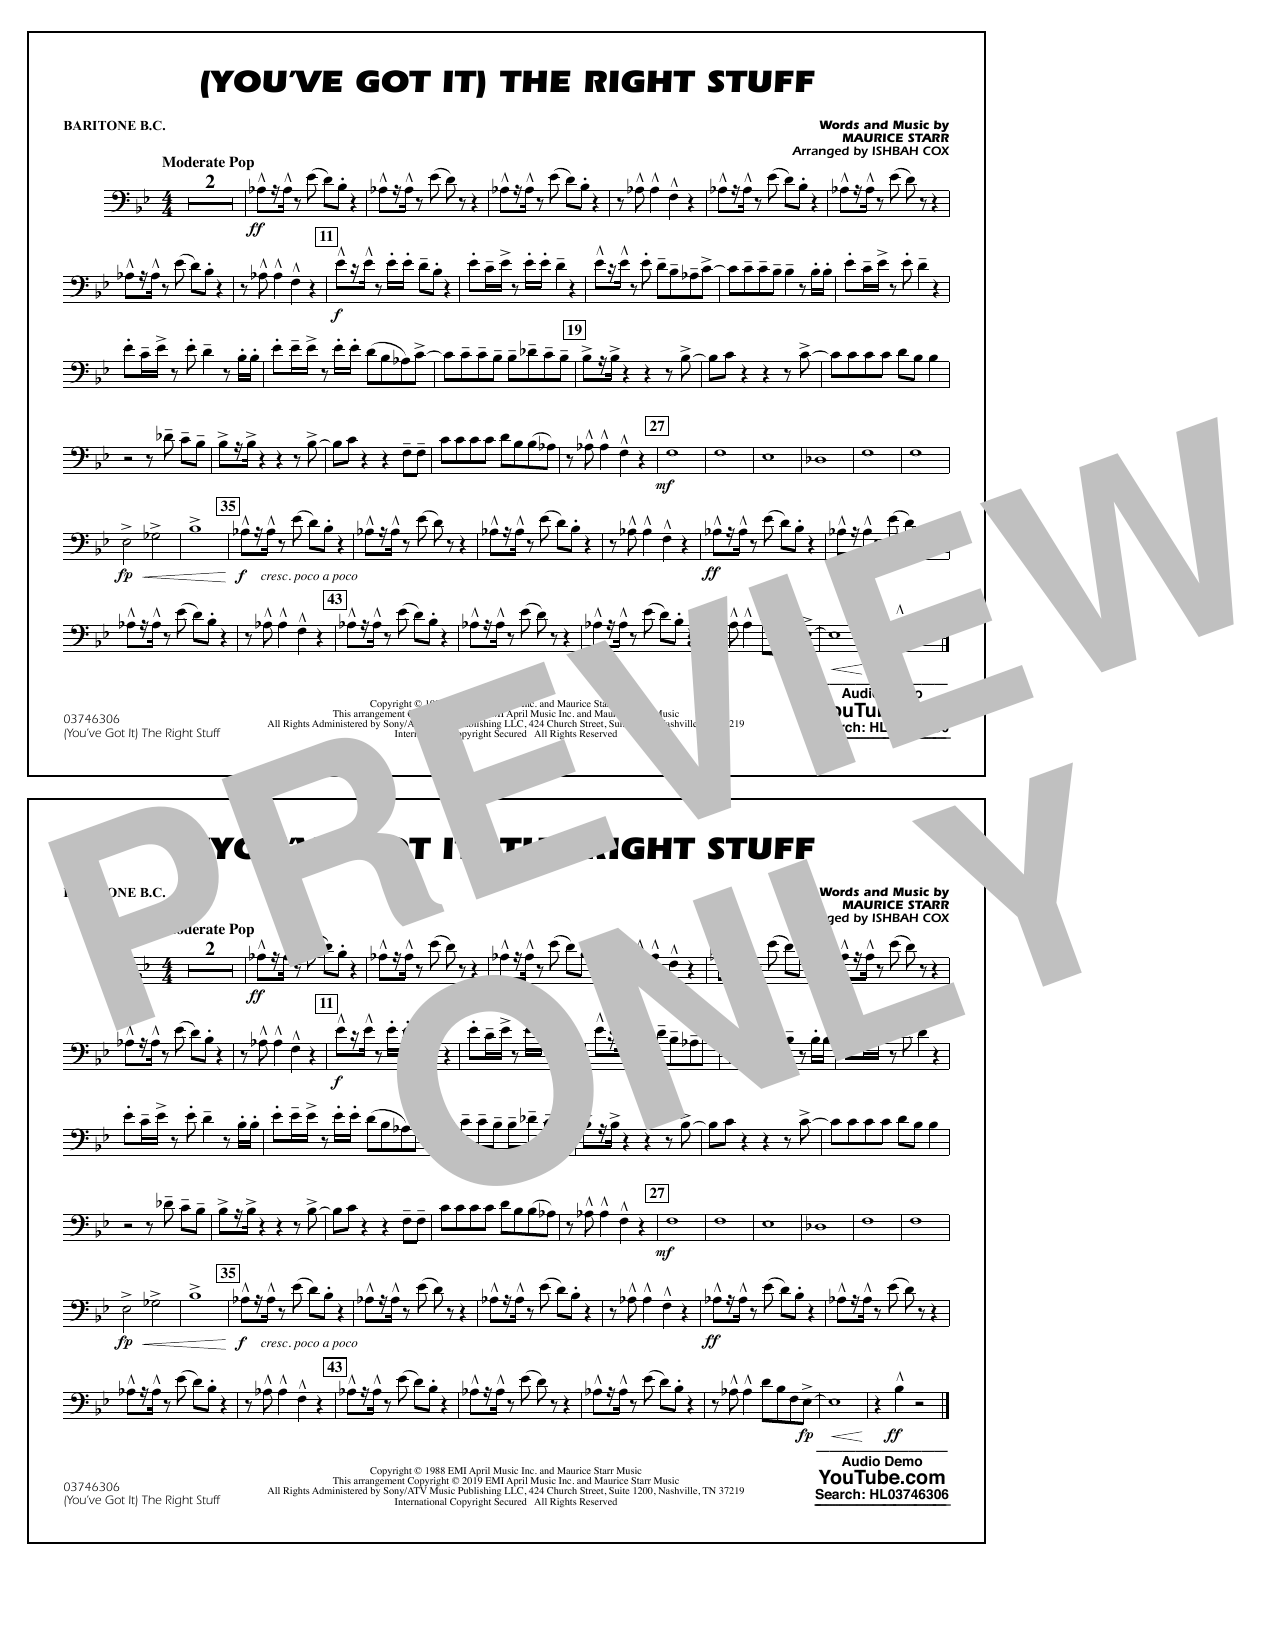 New Kids On The Block (You've Got It) The Right Stuff (arr. Ishbah Cox) - Baritone B.C. sheet music preview music notes and score for Marching Band including 1 page(s)